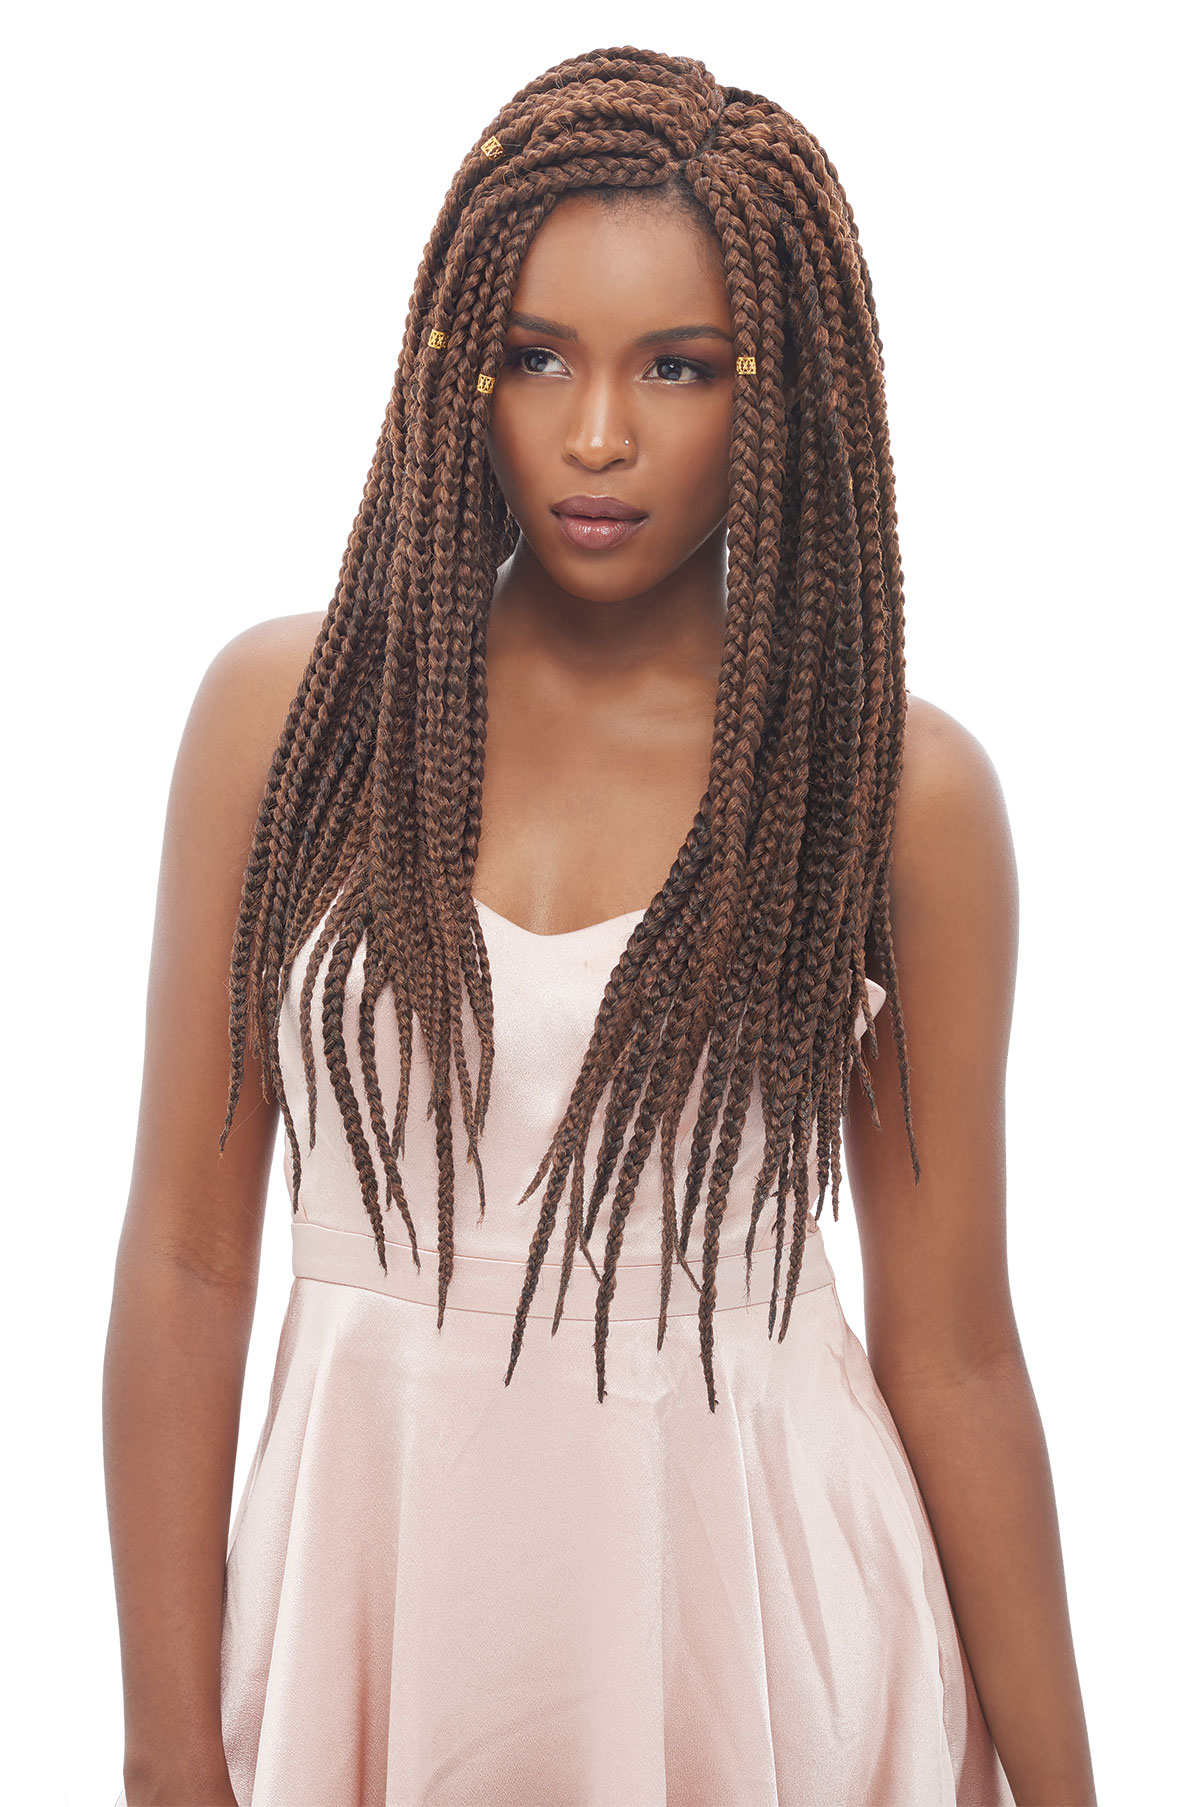 MEDIUM-HAVANA-MAMBO-BOX-BRAID-24-034-JANET-COLLECTION-CROCHET-BRAIDING ...